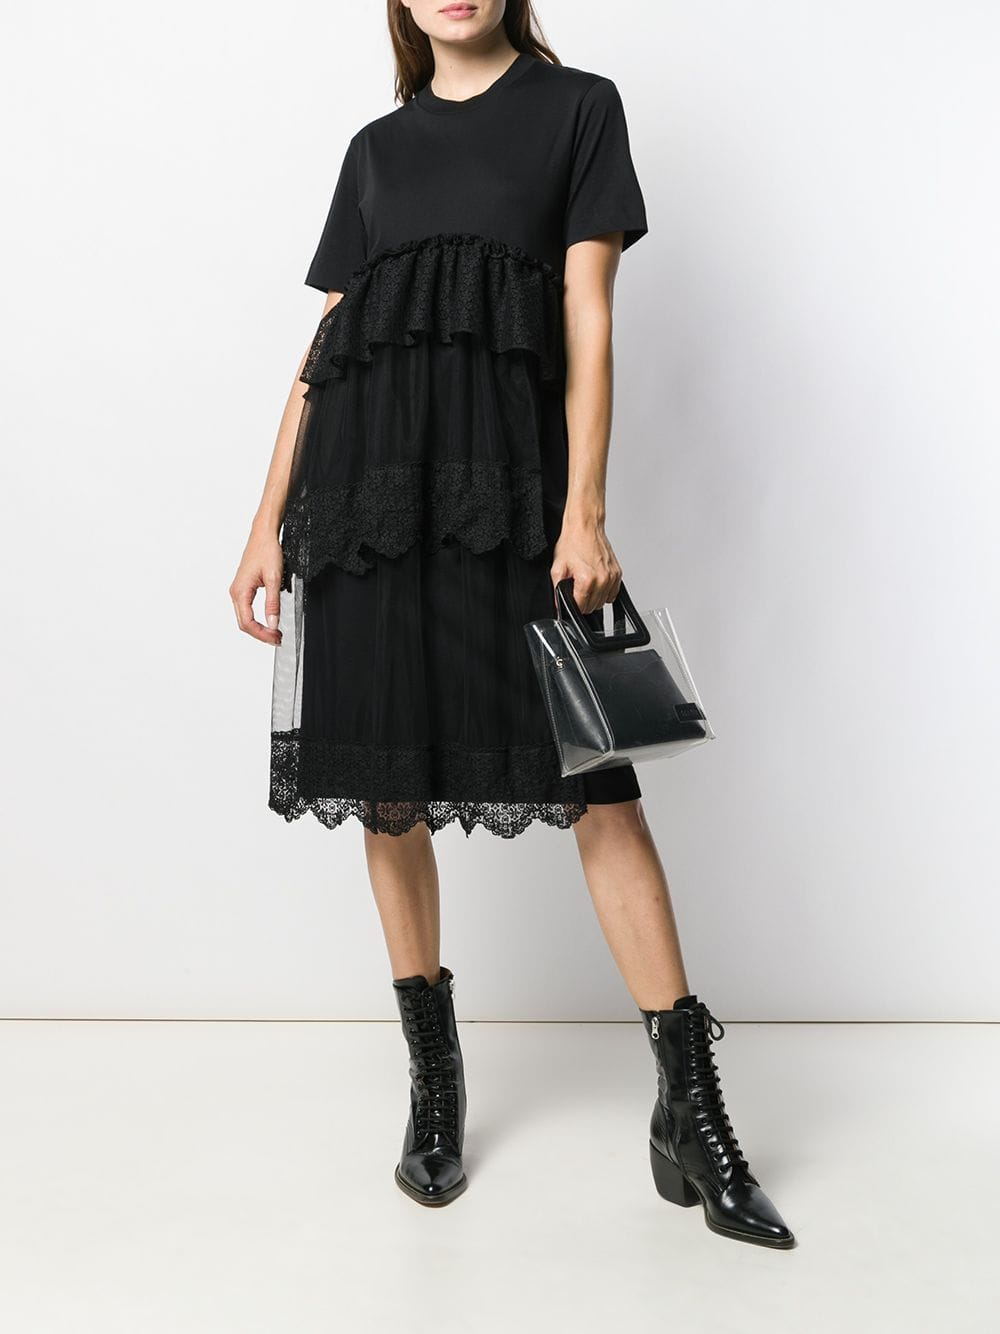 SIMONE ROCHA Frill-Trim Midi Dress